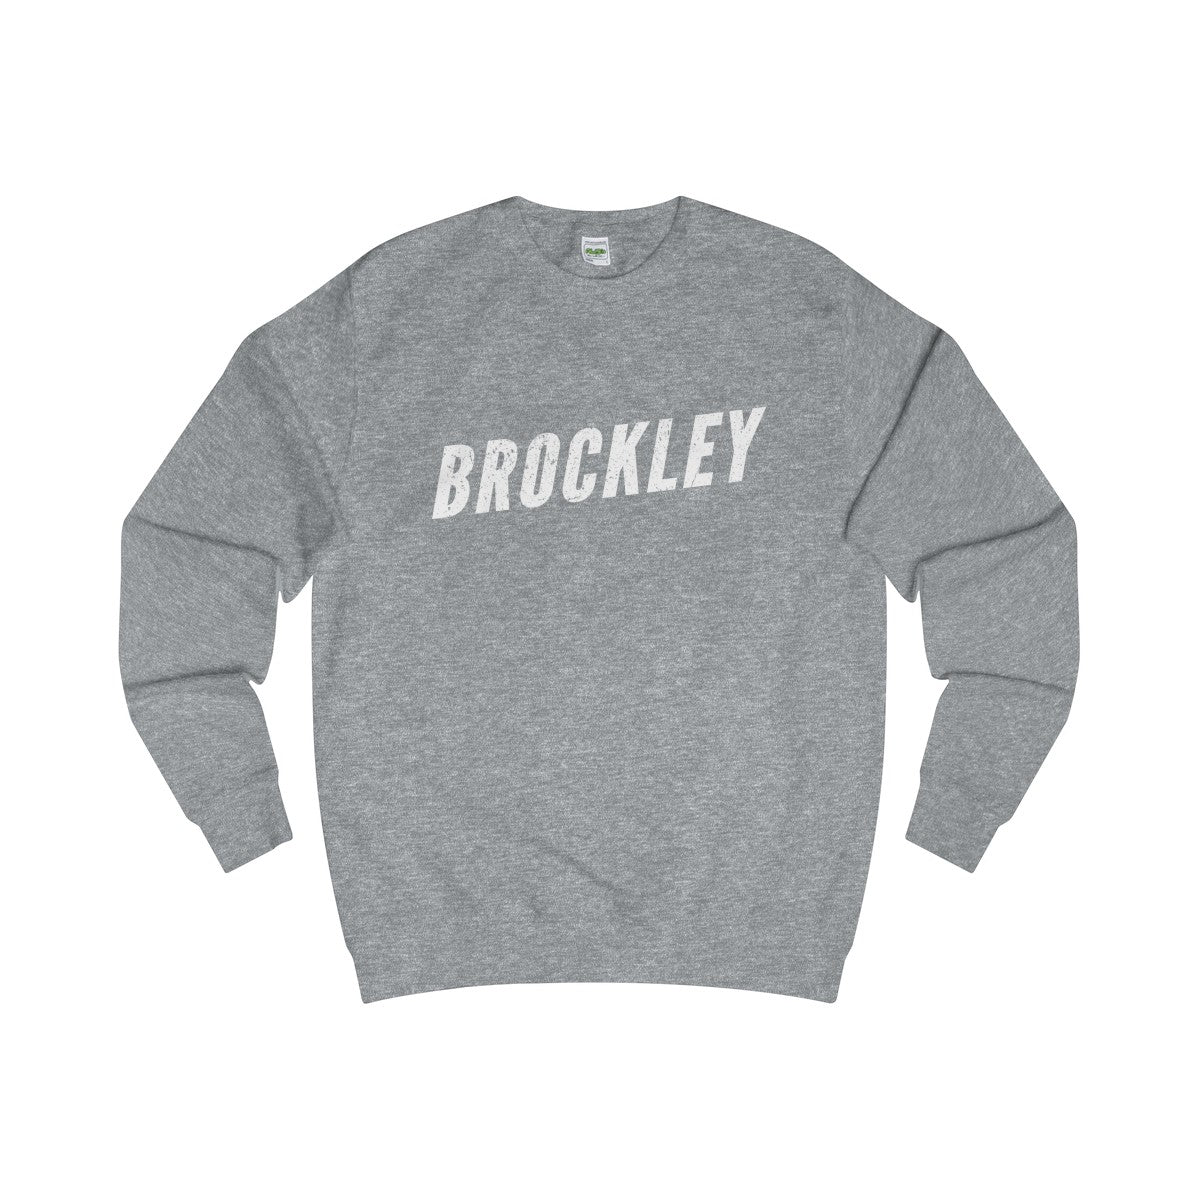 Brockley Sweater